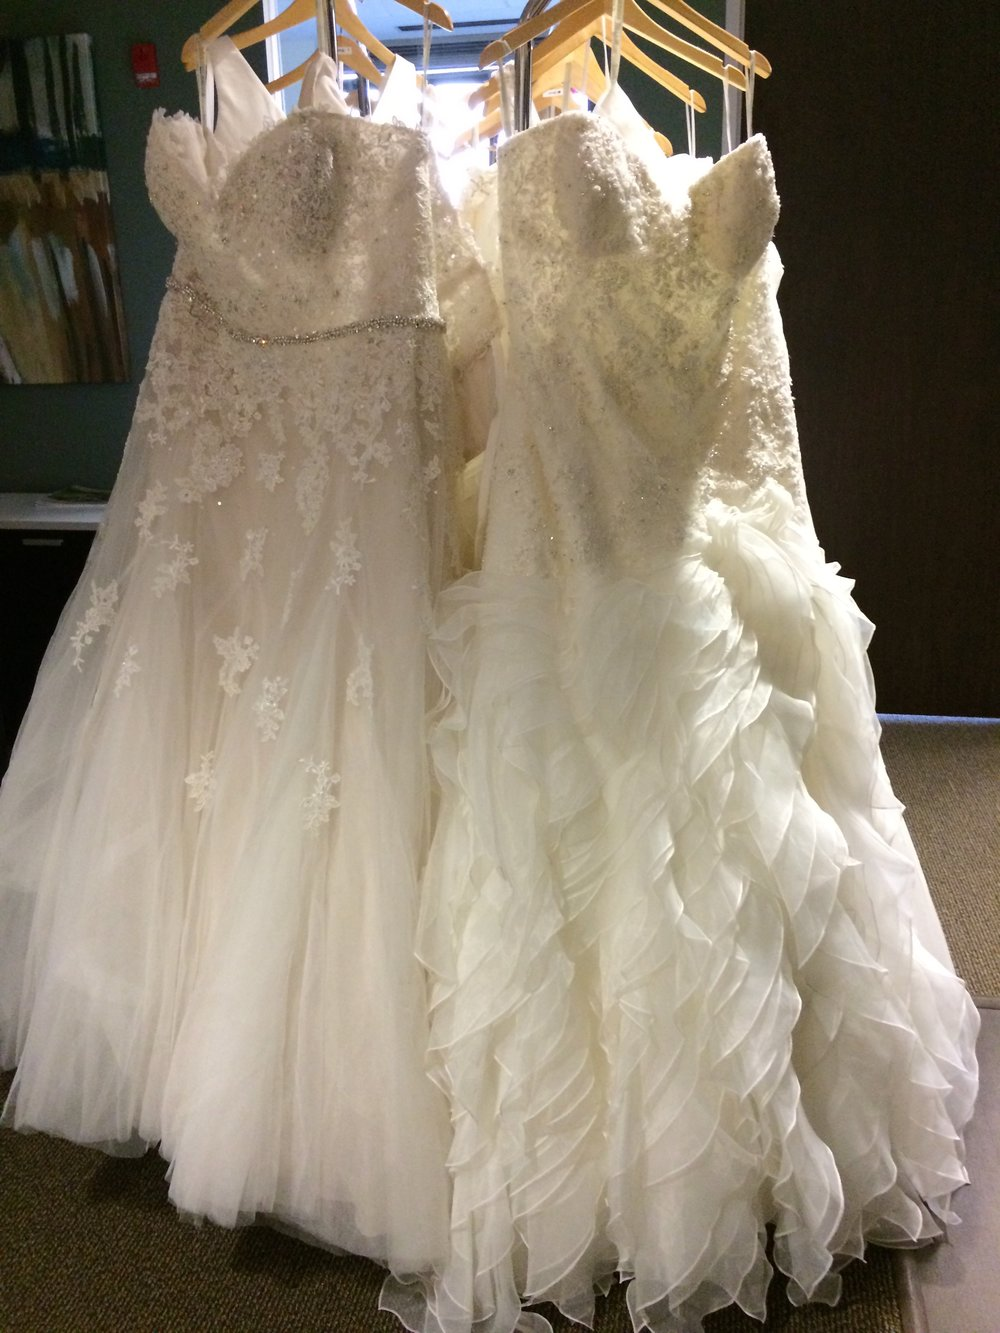 Just a few of our gorgeous bridal gowns.